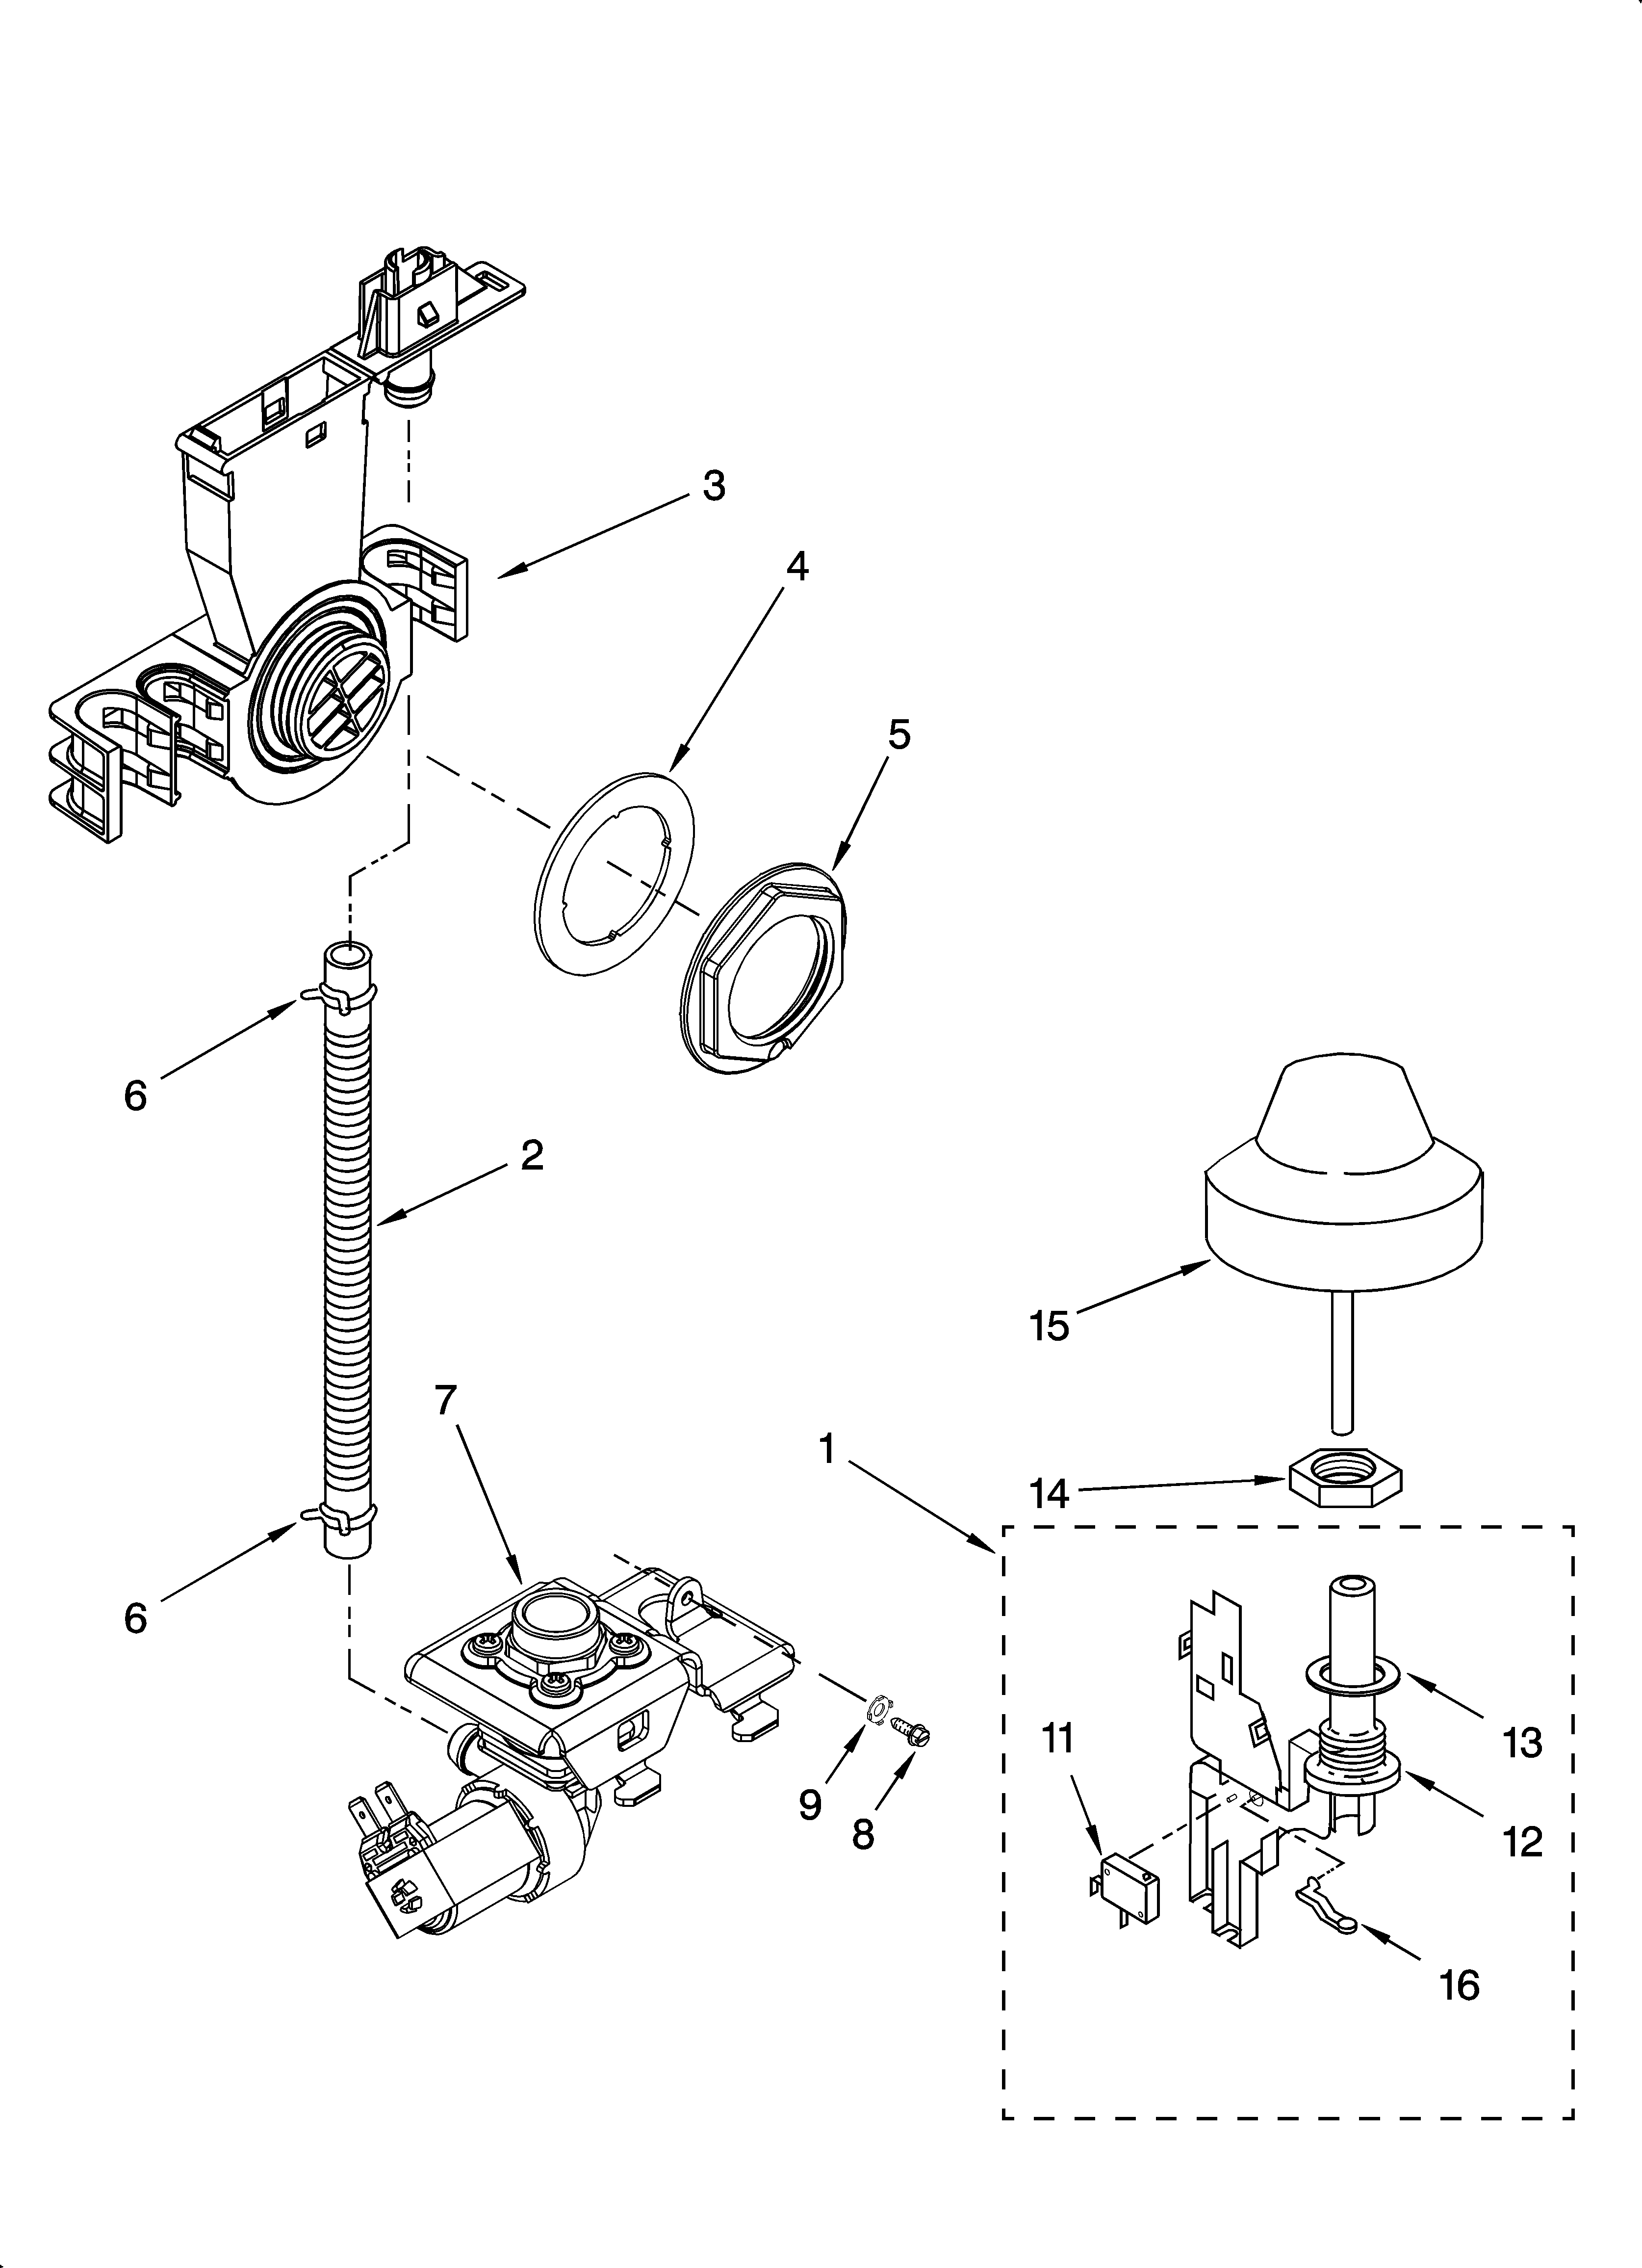 KitchenAid KUDS01FLBL2 fill and overfill parts diagram